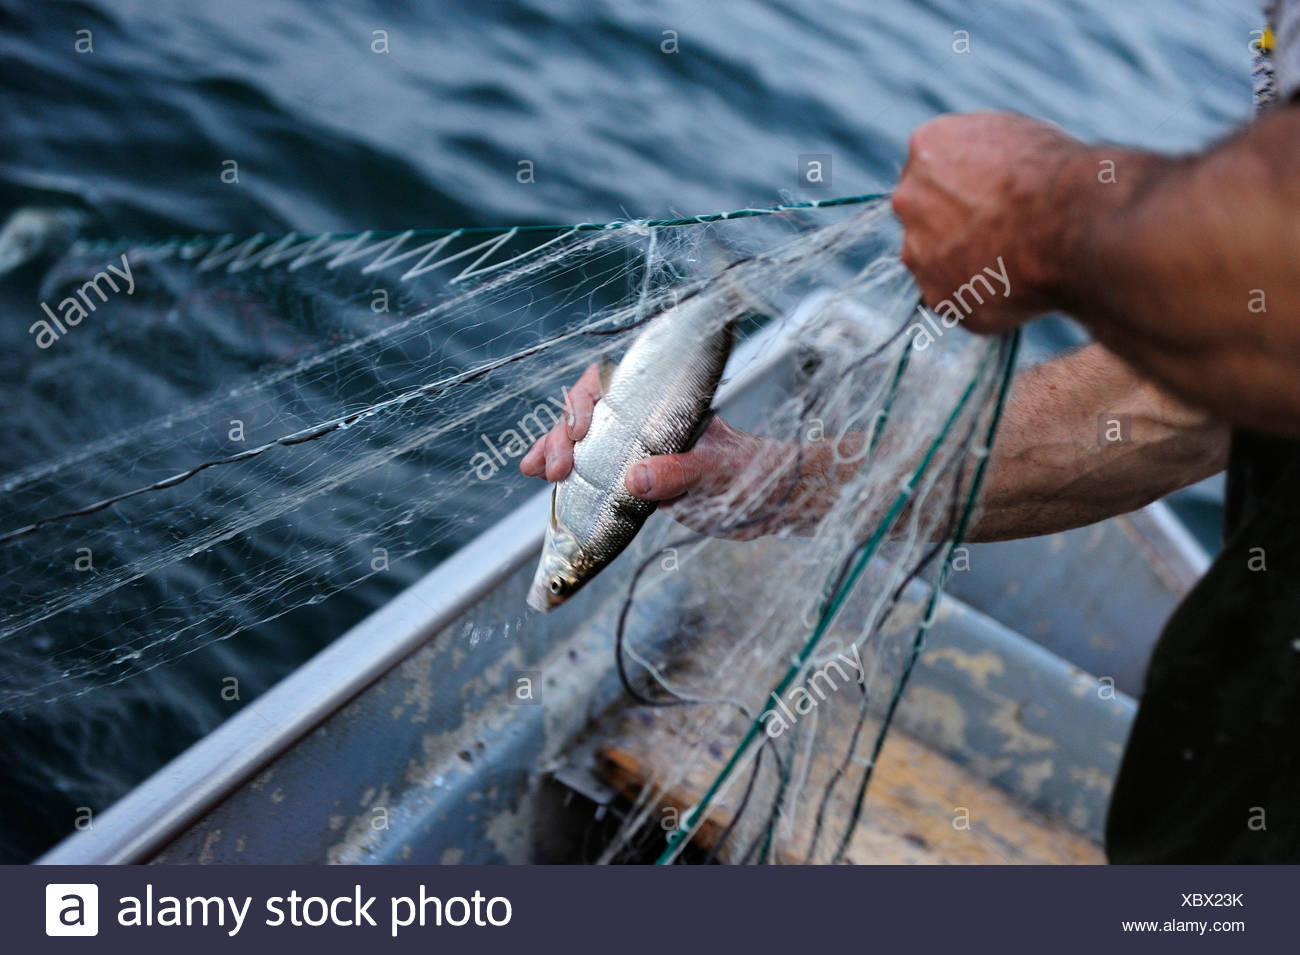 The fisherman Johann Strobl casting for fish on Lake Starnberg, Fuenfseenland area, Upper Bavaria, Bavaria, Germany, Europe - Stock Image